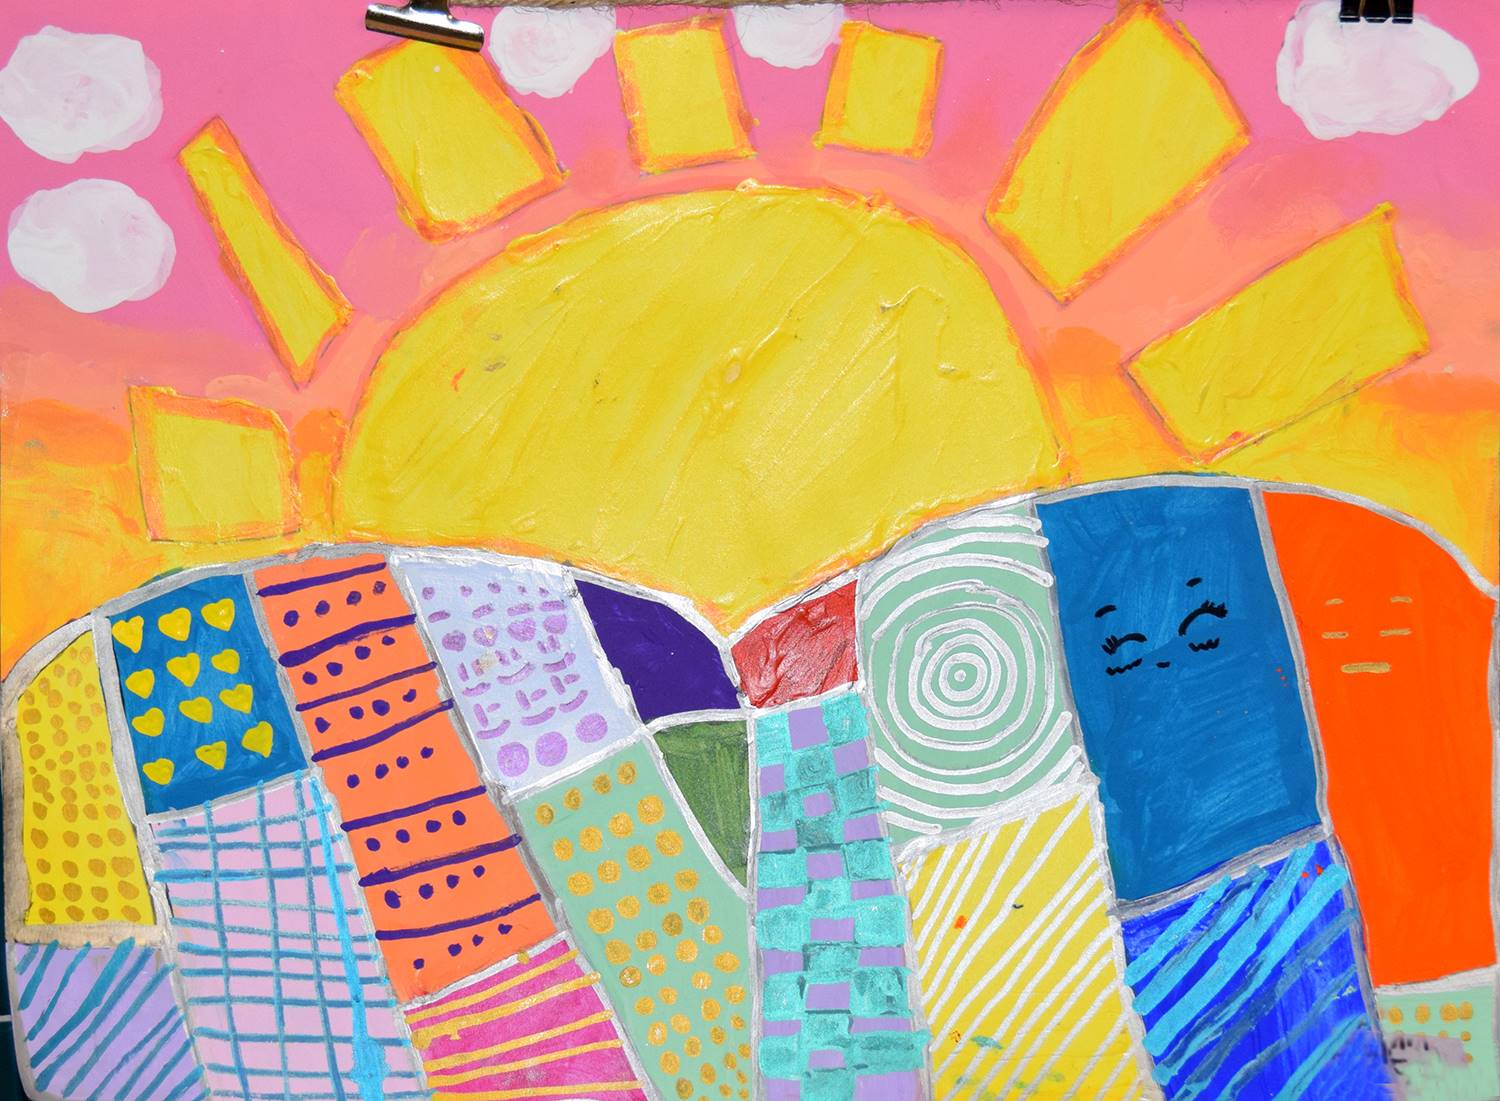 The sun rising over hills, which look like patchwork quilts. By KayLynn at Glenwood Elementary Schoo